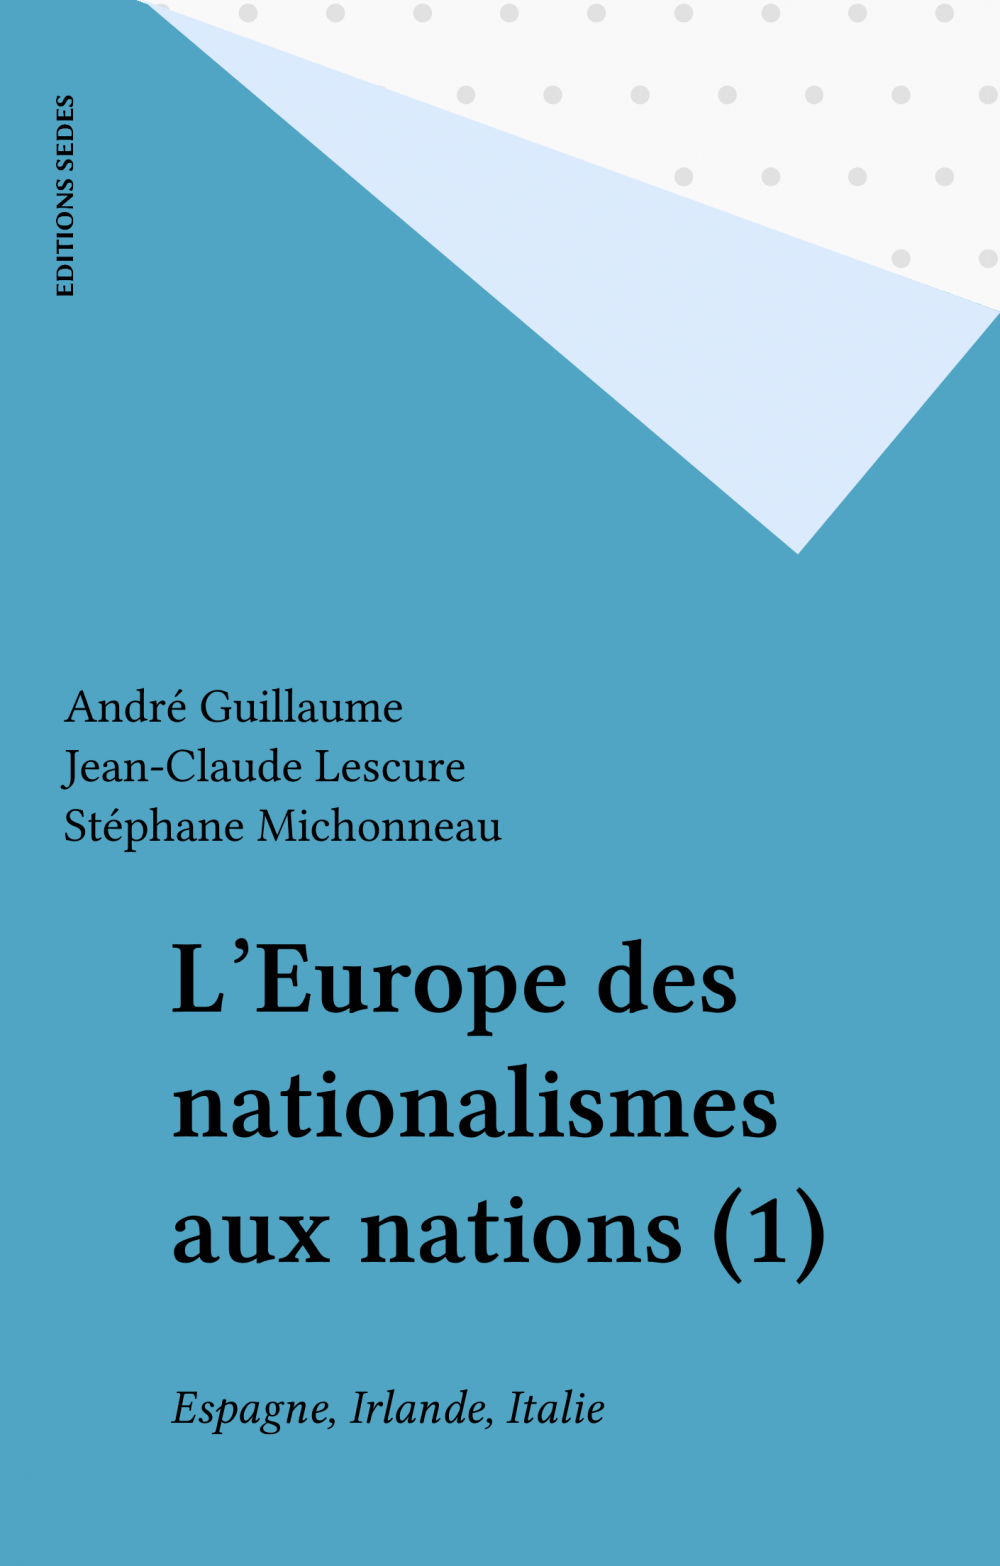 L'Europe des nationalismes aux nations (1)